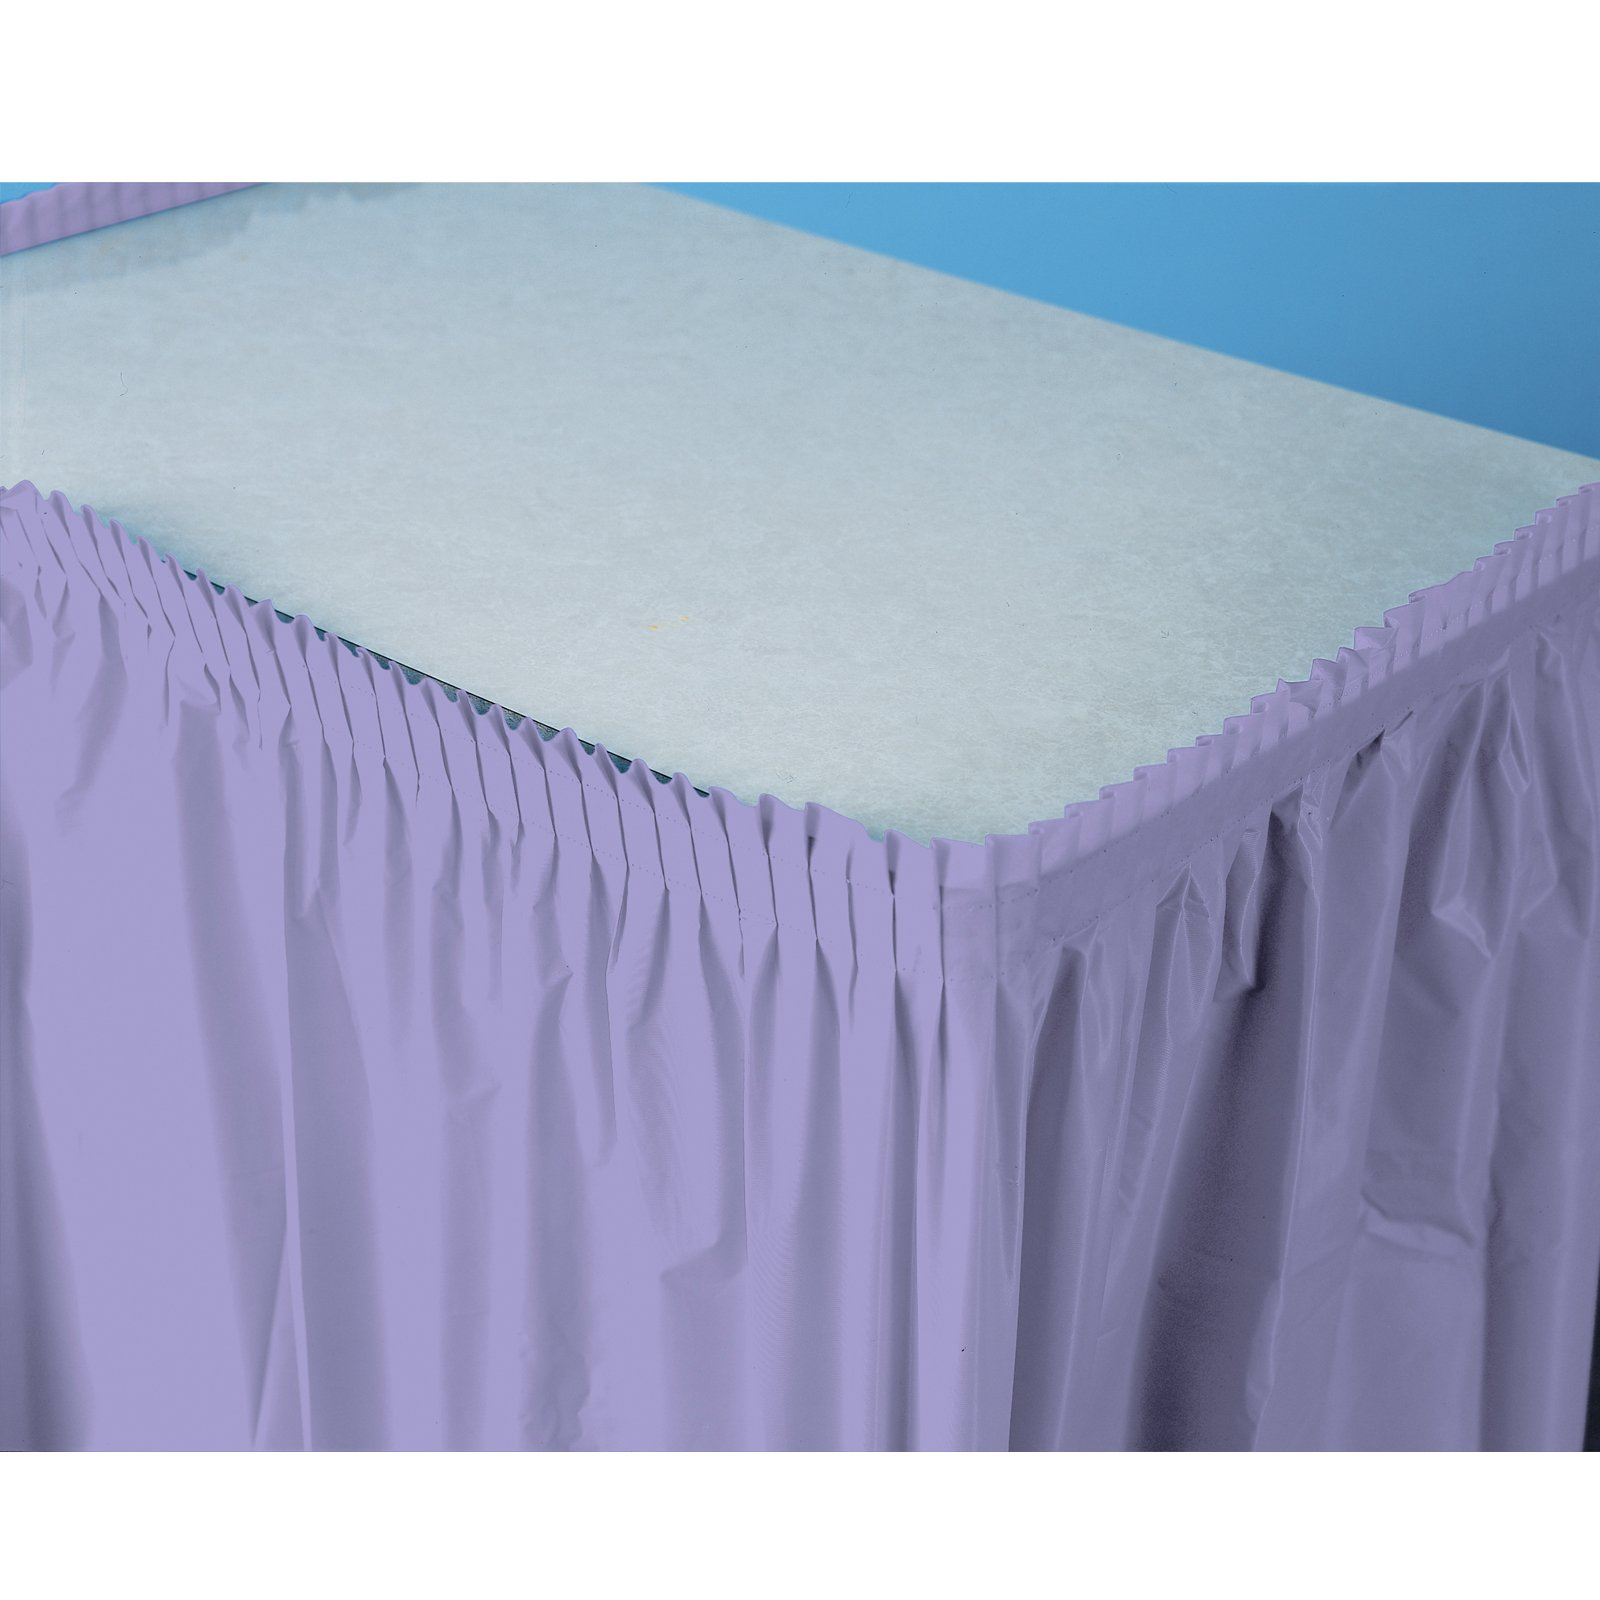 Luscious Lavender (Lavender) Plastic Table Skirt